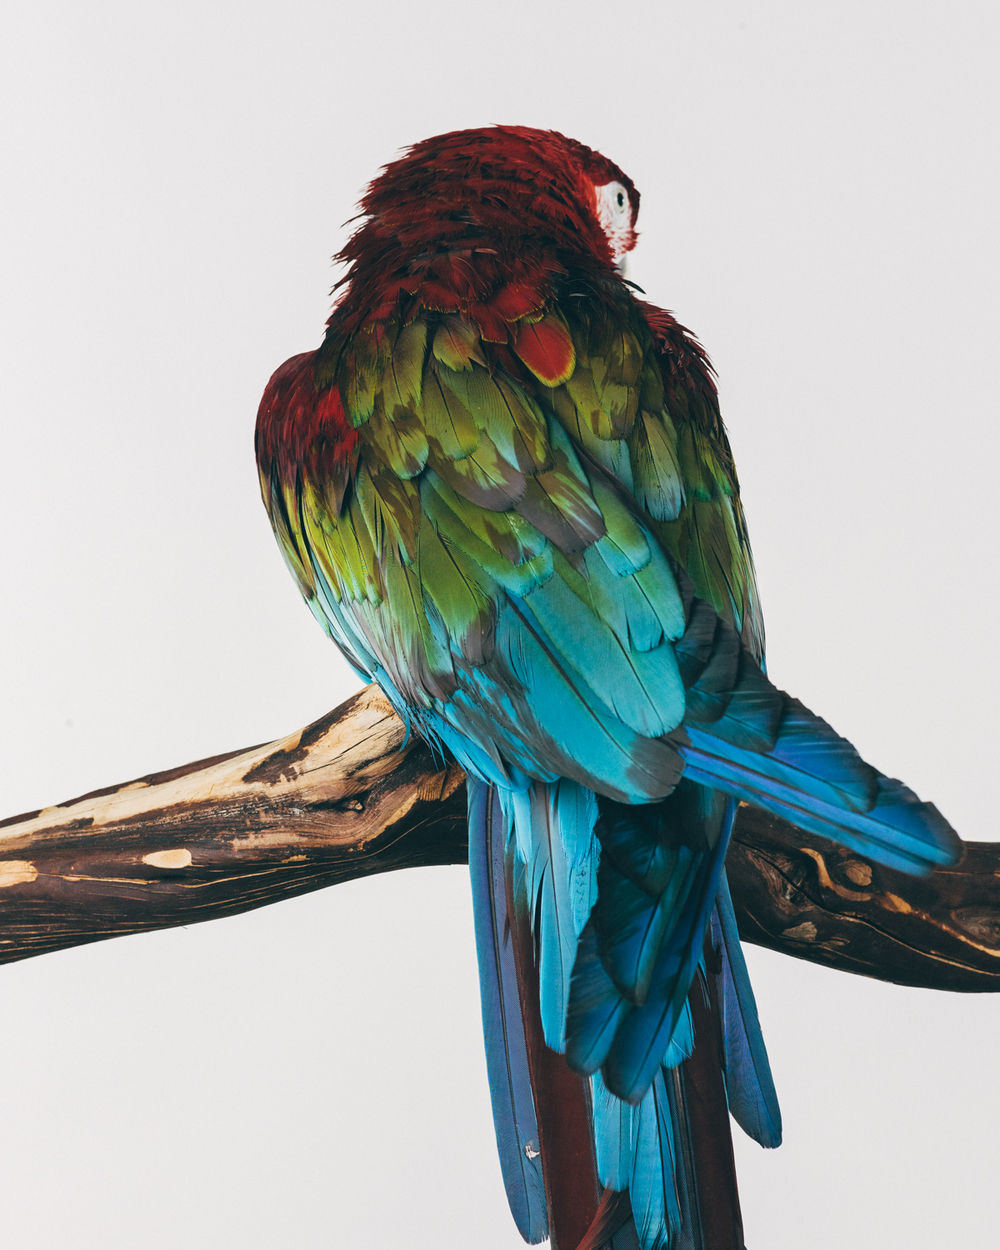 ELIZABETH   Female. Green-winged Macaw                                                    ( Ara chloropterus)   Age: 10   Arrived to the sancturay in 2011 when her owner did not want to pay for vet care. They were buying a new house and said that Elizabeth needed medical treatment and they would rather have her euthanized than pay for her care.  The sanctuary took her in and changed her diet as well as gave her physical therapy for a previously broken leg.  She thrived!  She is definitely a favorite with the volunteers since she goes to everyone for loving.